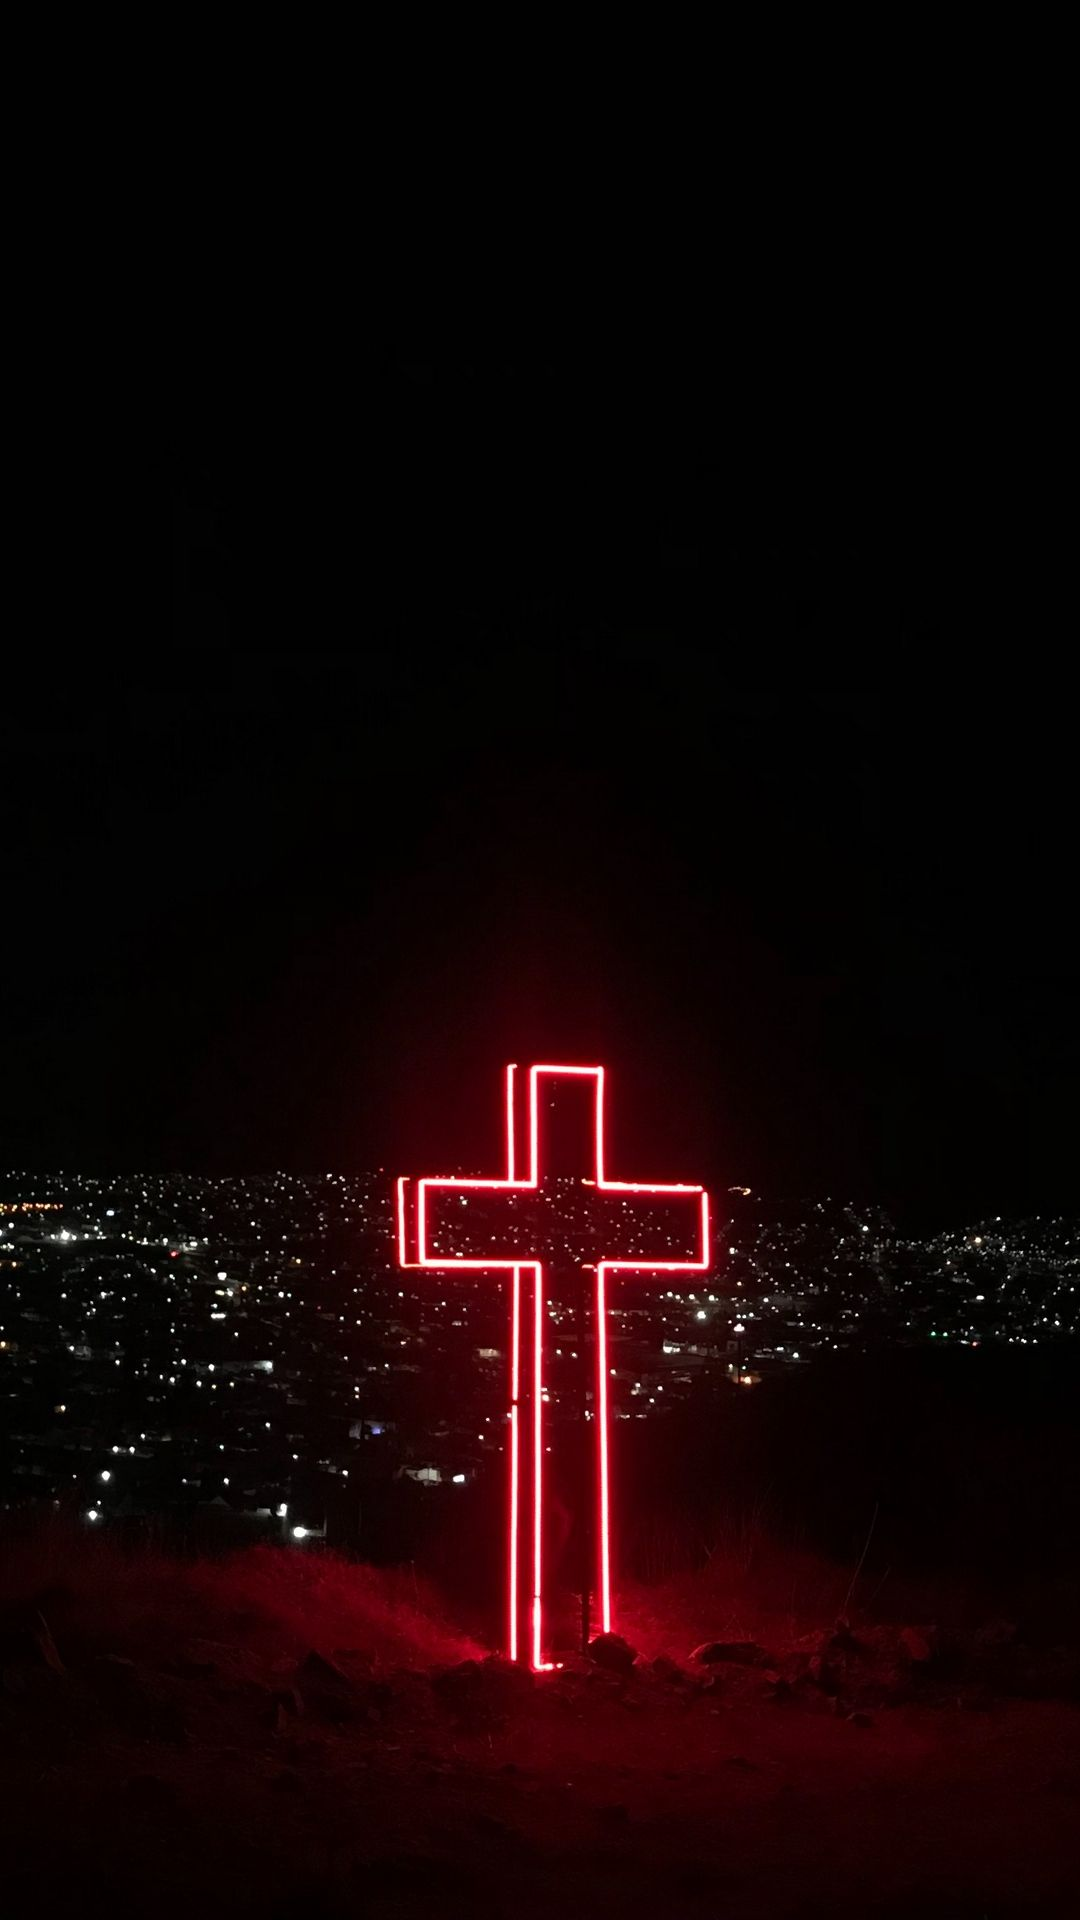 Cross Wallpaper Background Hupages Download Iphone Wallpapers Cross Wallpaper Jesus Wallpaper Christian Iphone Wallpaper